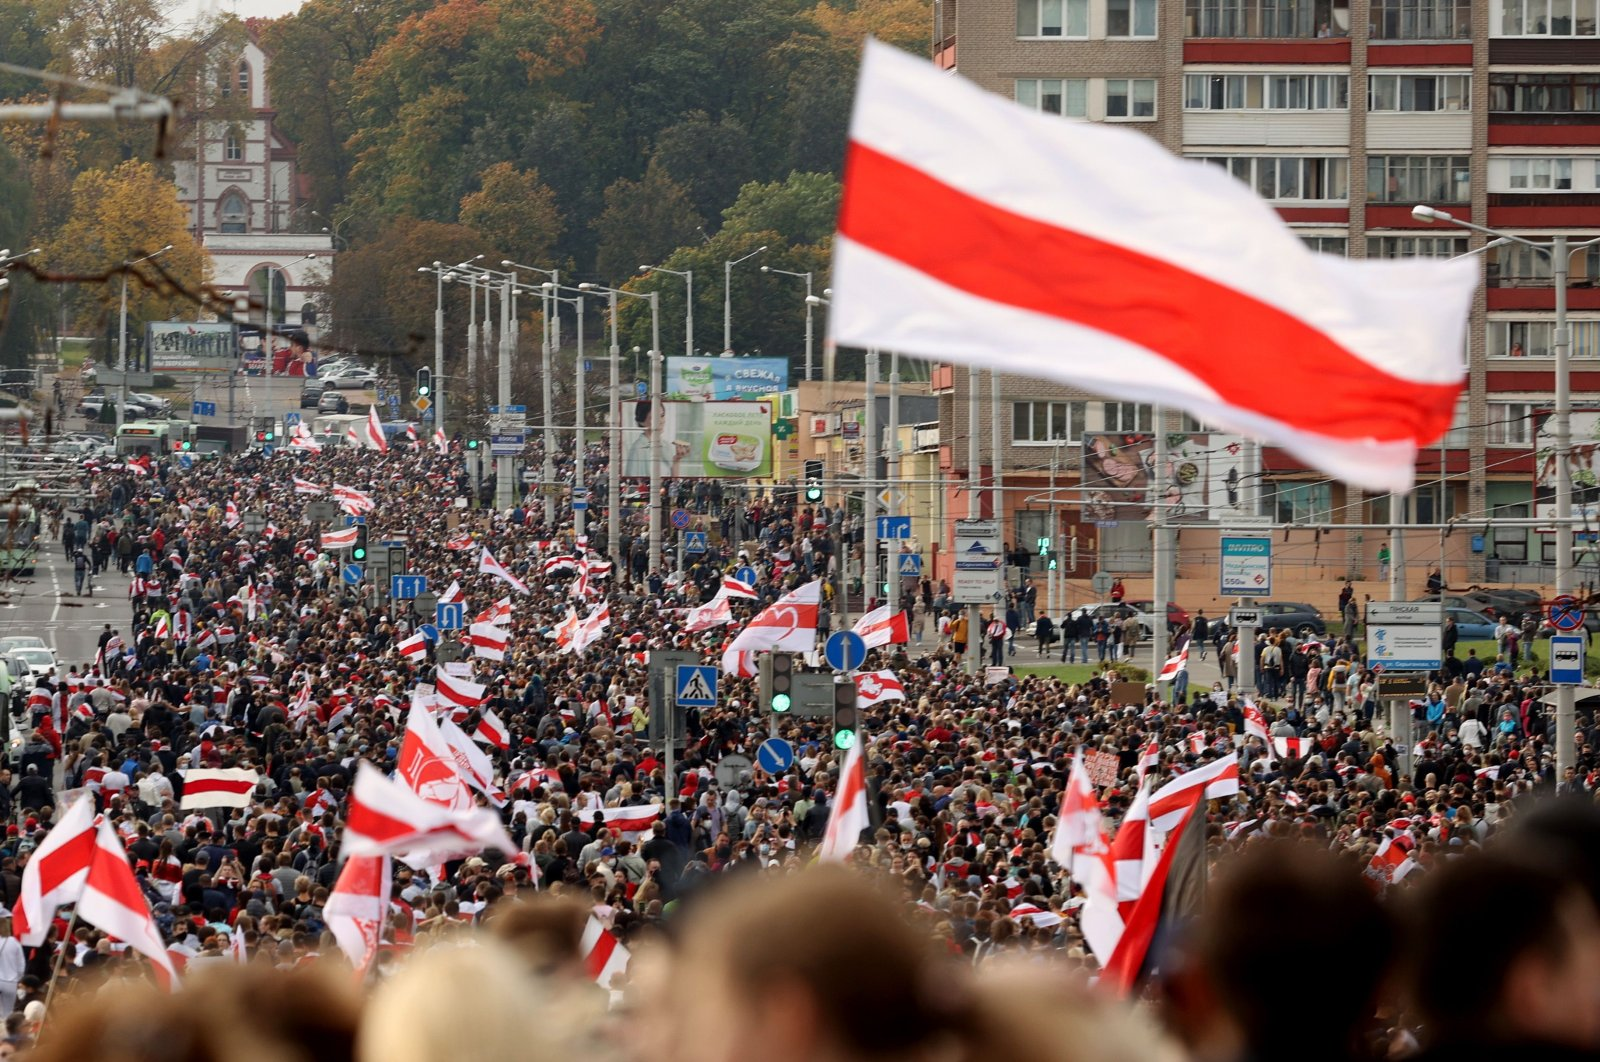 Protesters parade through the streets during a rally demanding the government free jailed activists of the opposition in Minsk, Belarus, on Oct. 4, 2020. (AFP Photo)